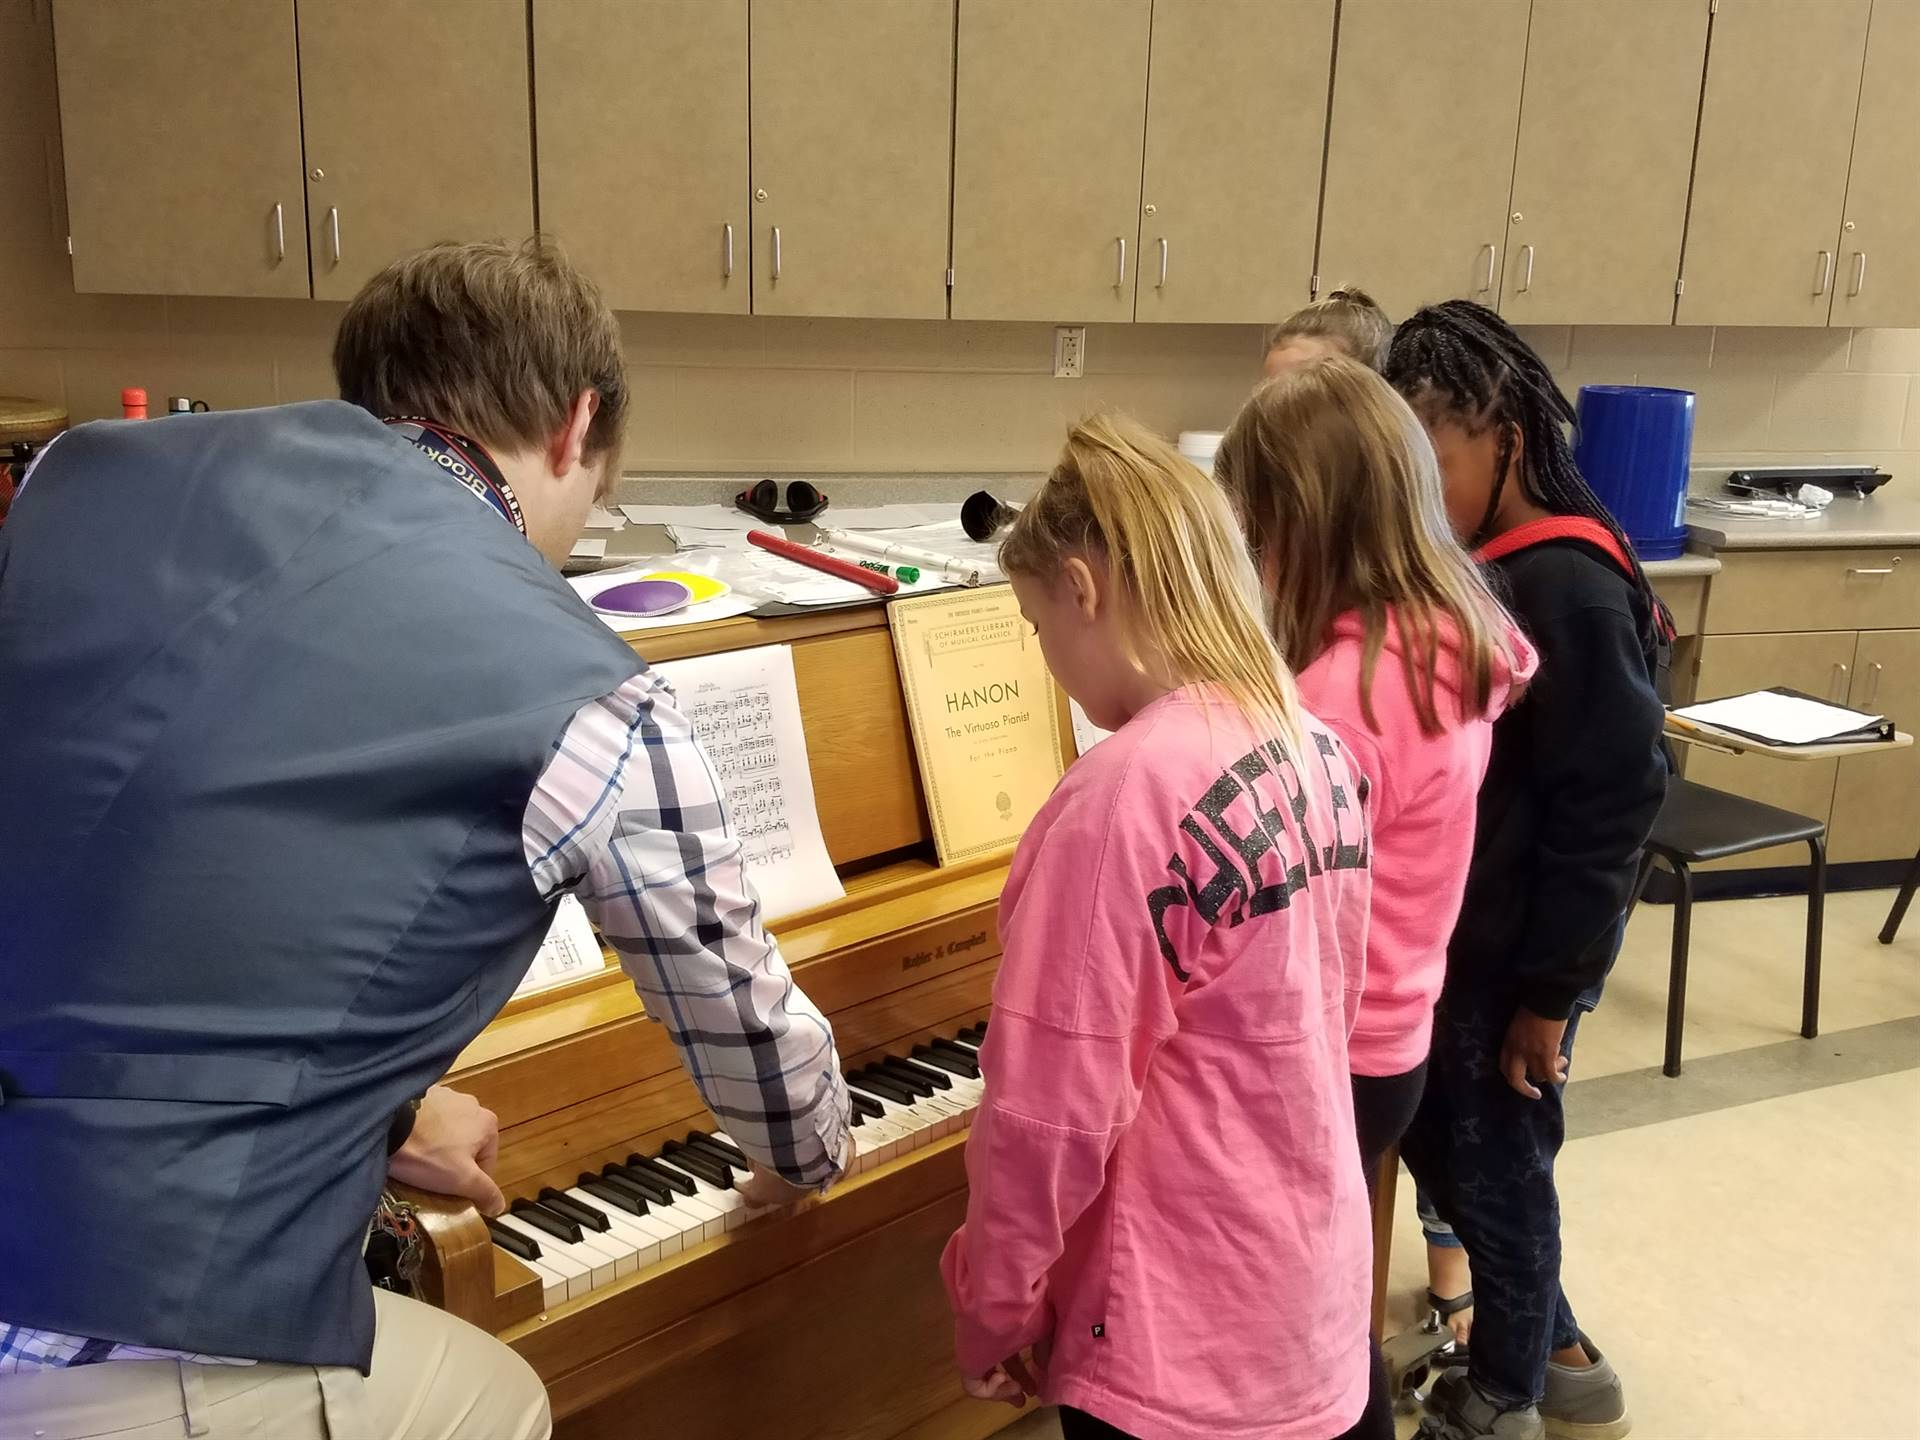 5th grade students learning to play the piano in Mr. Danch's Music Class